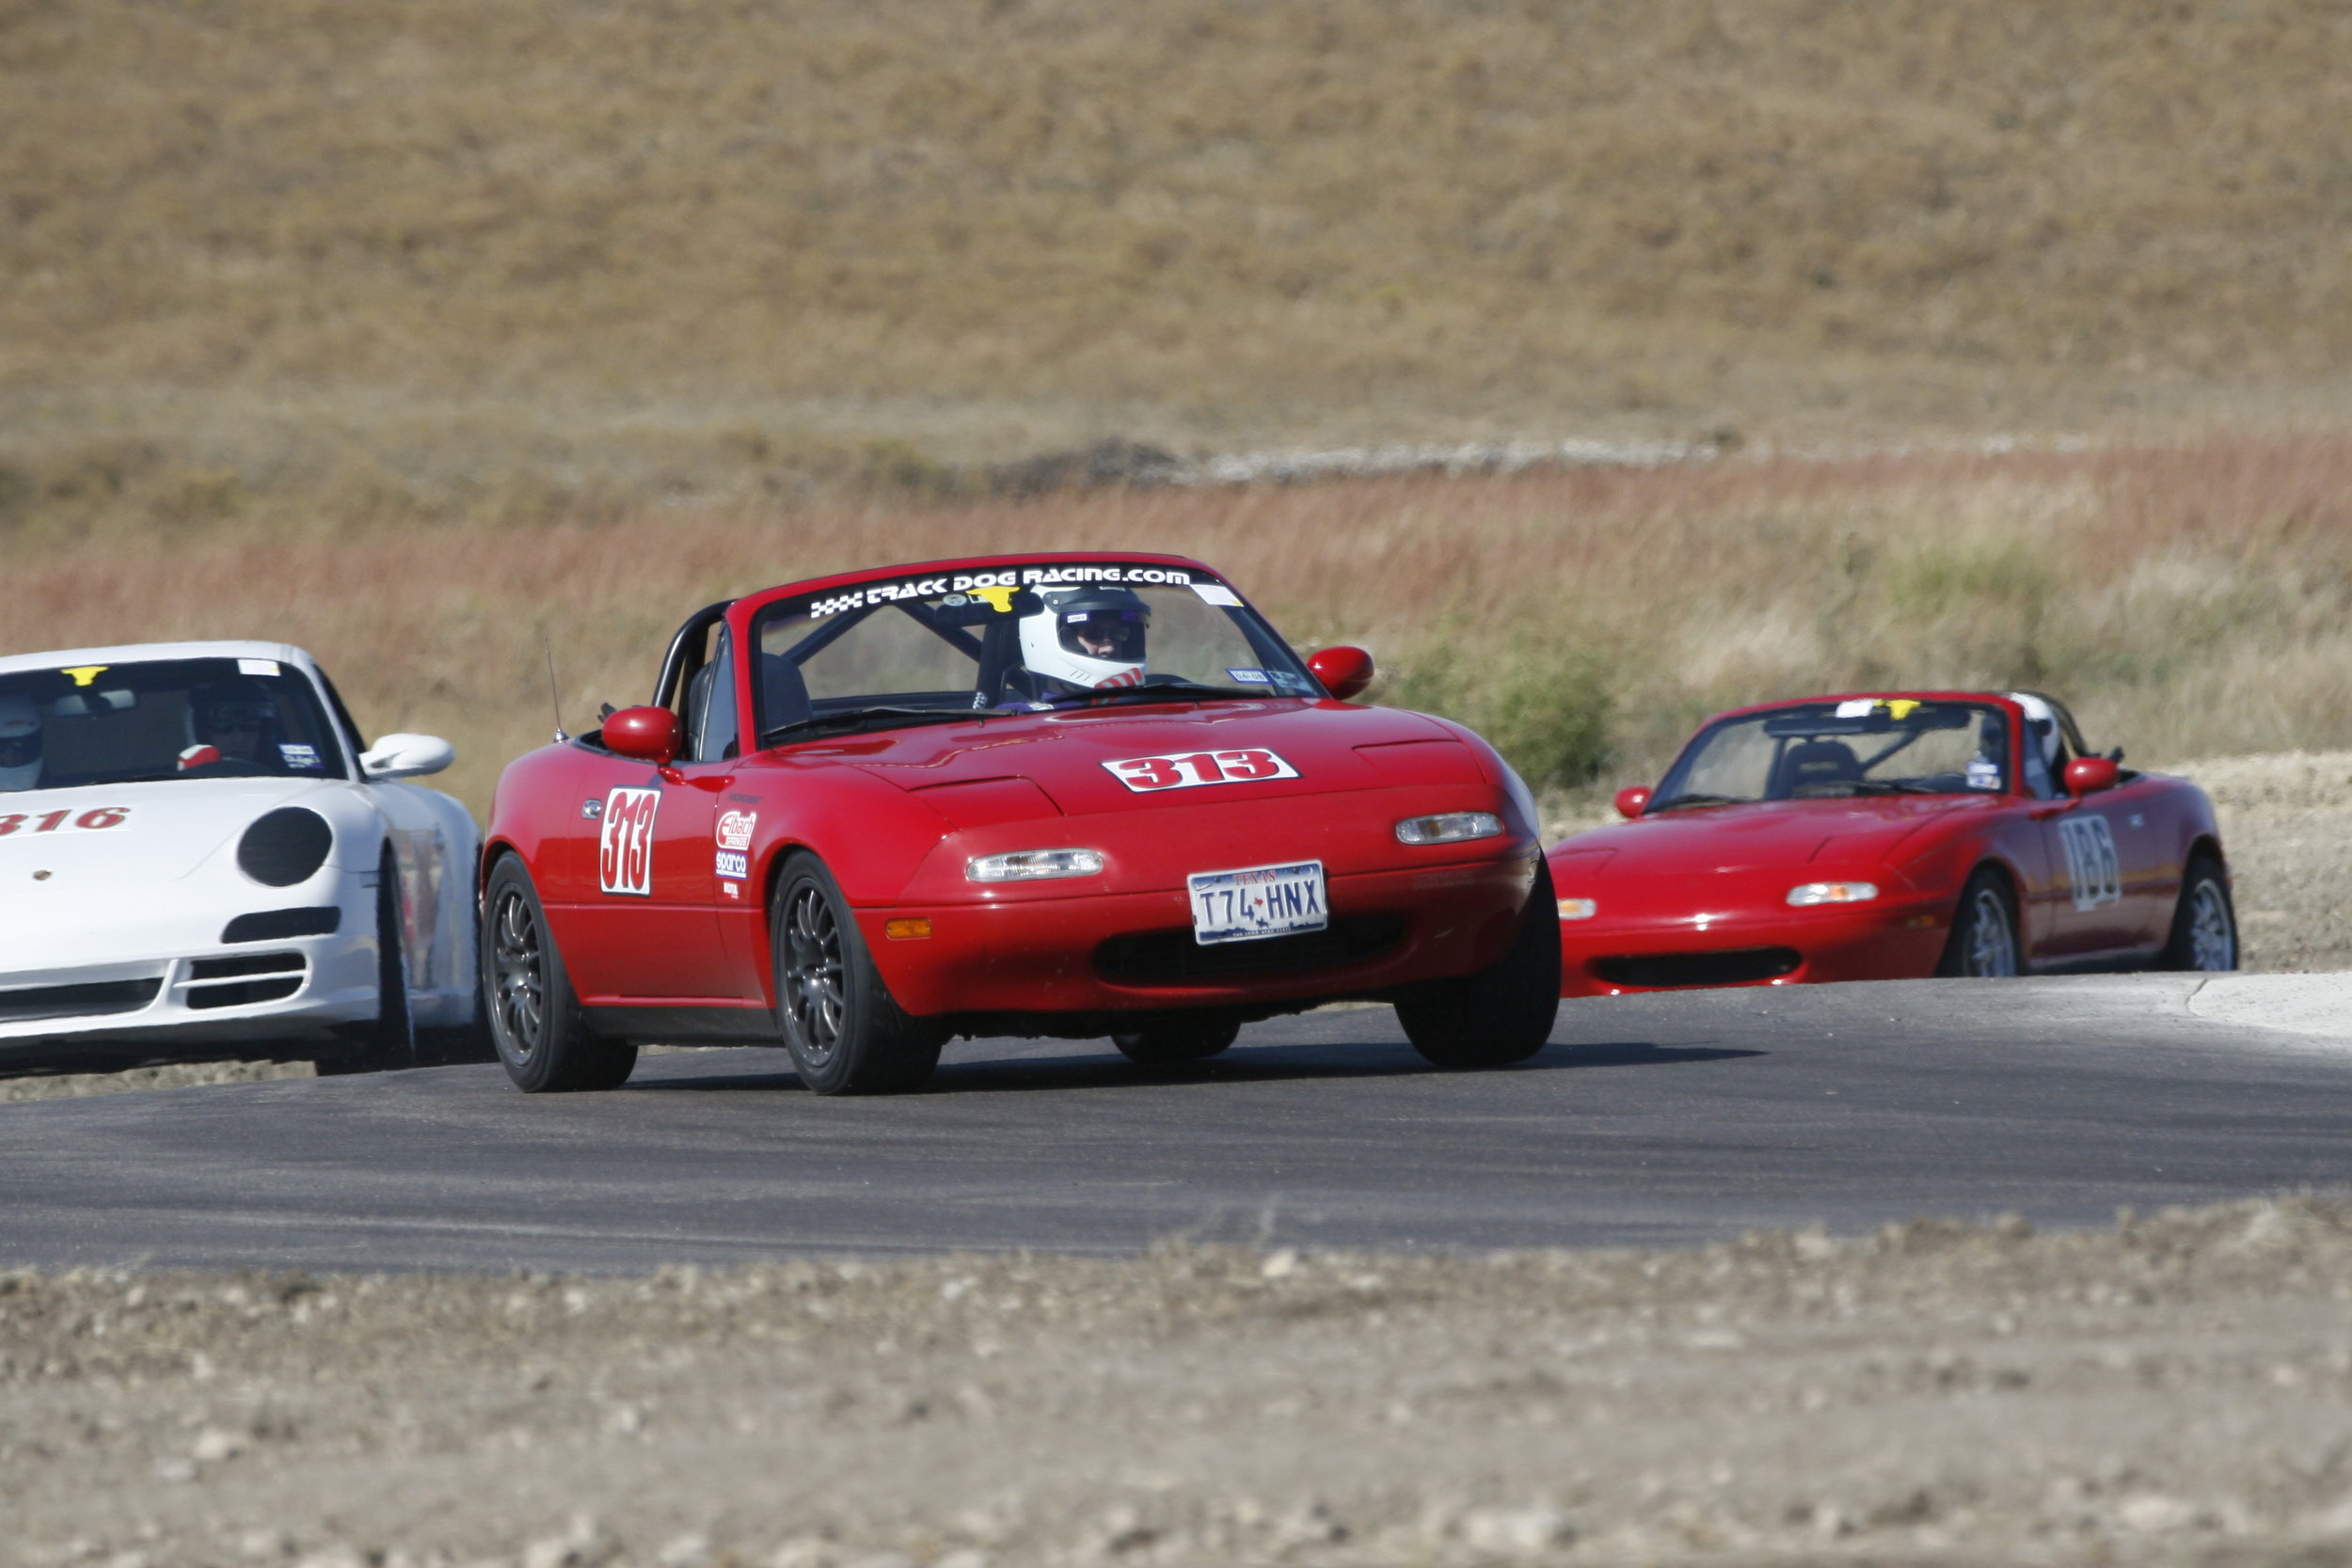 Miata in traffic 2.jpg